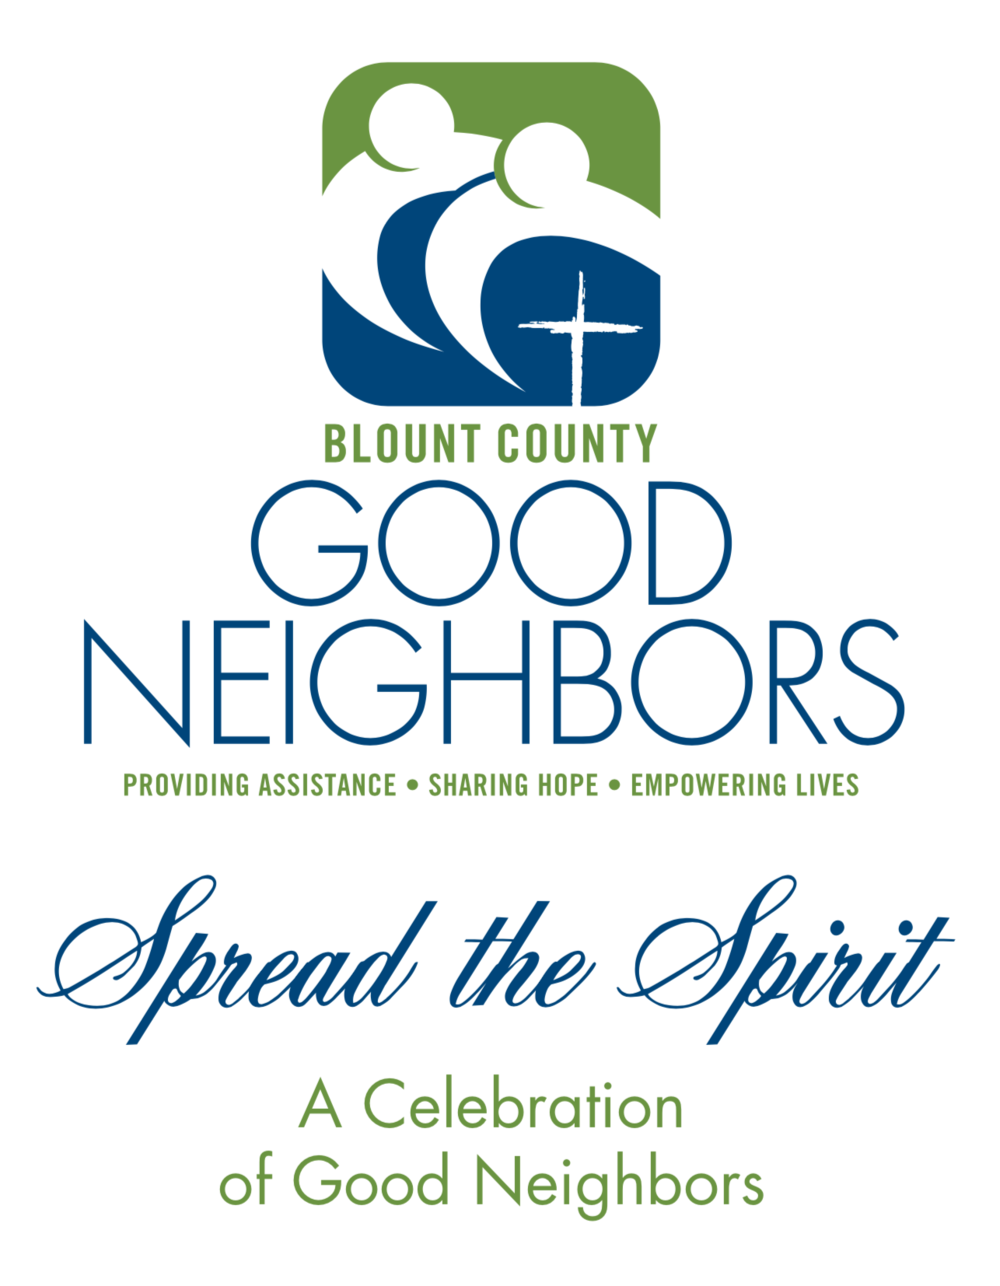 Spirit of Good Neighbors Dinner 2019 - Join us for our 7th Annual Spread the Spirit dinner!We will gather together to acknowledge and honor many of the good neighbors of Blount County.The event will take place at New Providence Presbyterian Church on November 7th @ 6:00 p.m.Nominations for the 2019 Awards will be accepted in early September  and will continue until October 1, 2019.